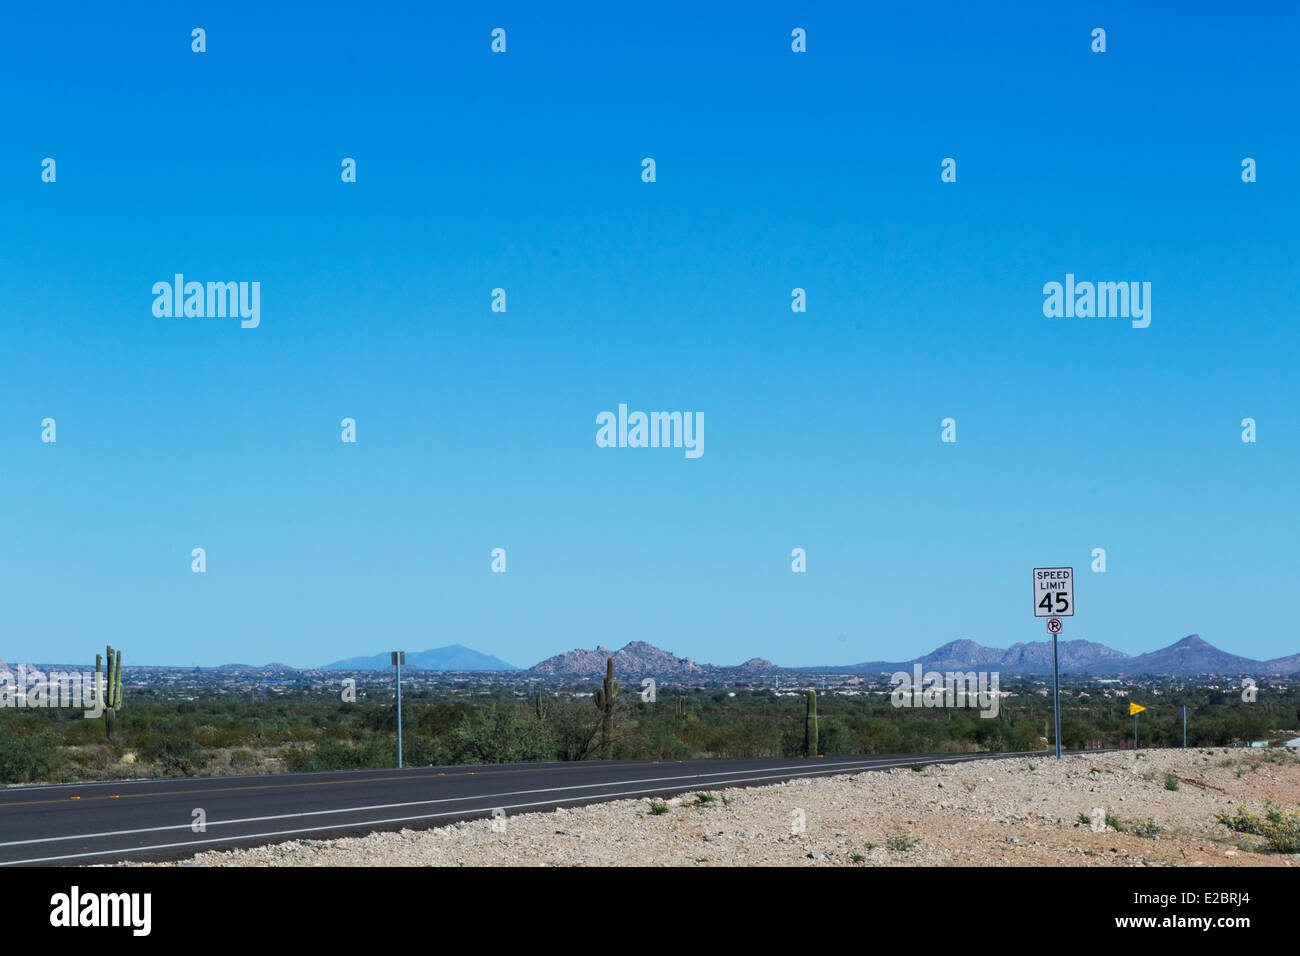 Desert road with speed limit and mountains - Stock Image